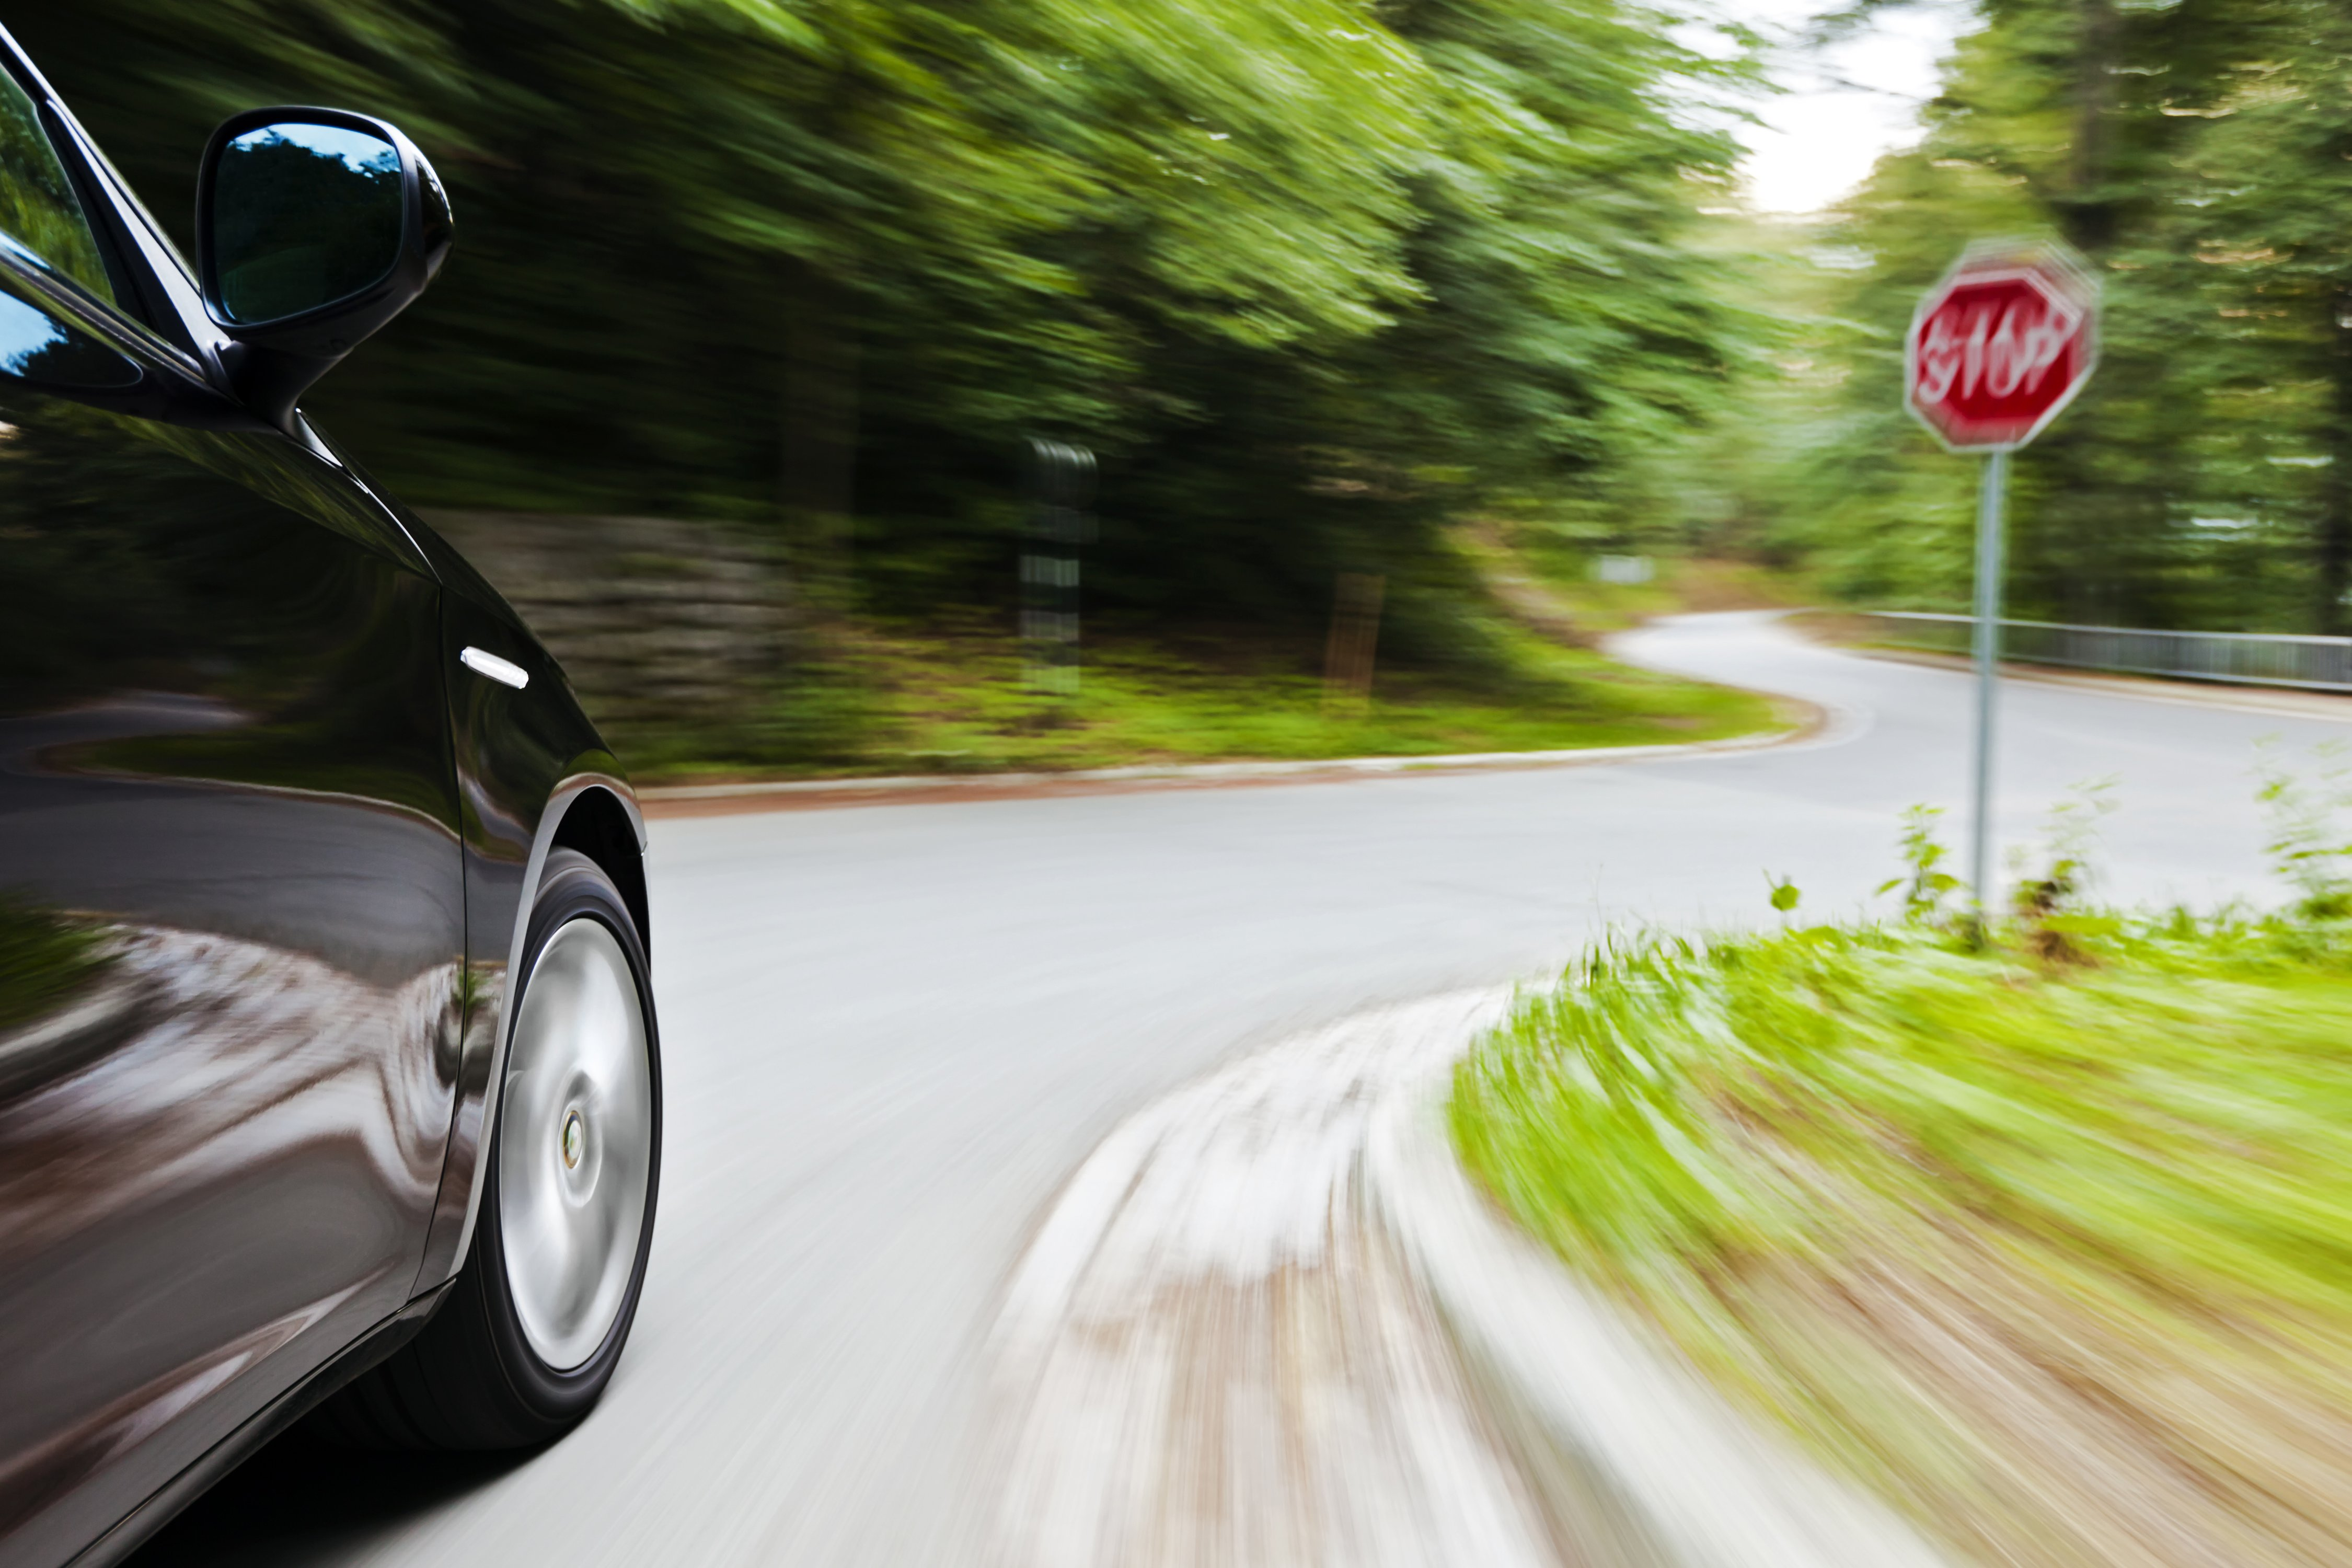 reckless driving consequences Reckless driving is a serious offense in pennsylvania and carries serious penalties speak with our attorneys today for legal help call (570) 213-5228.